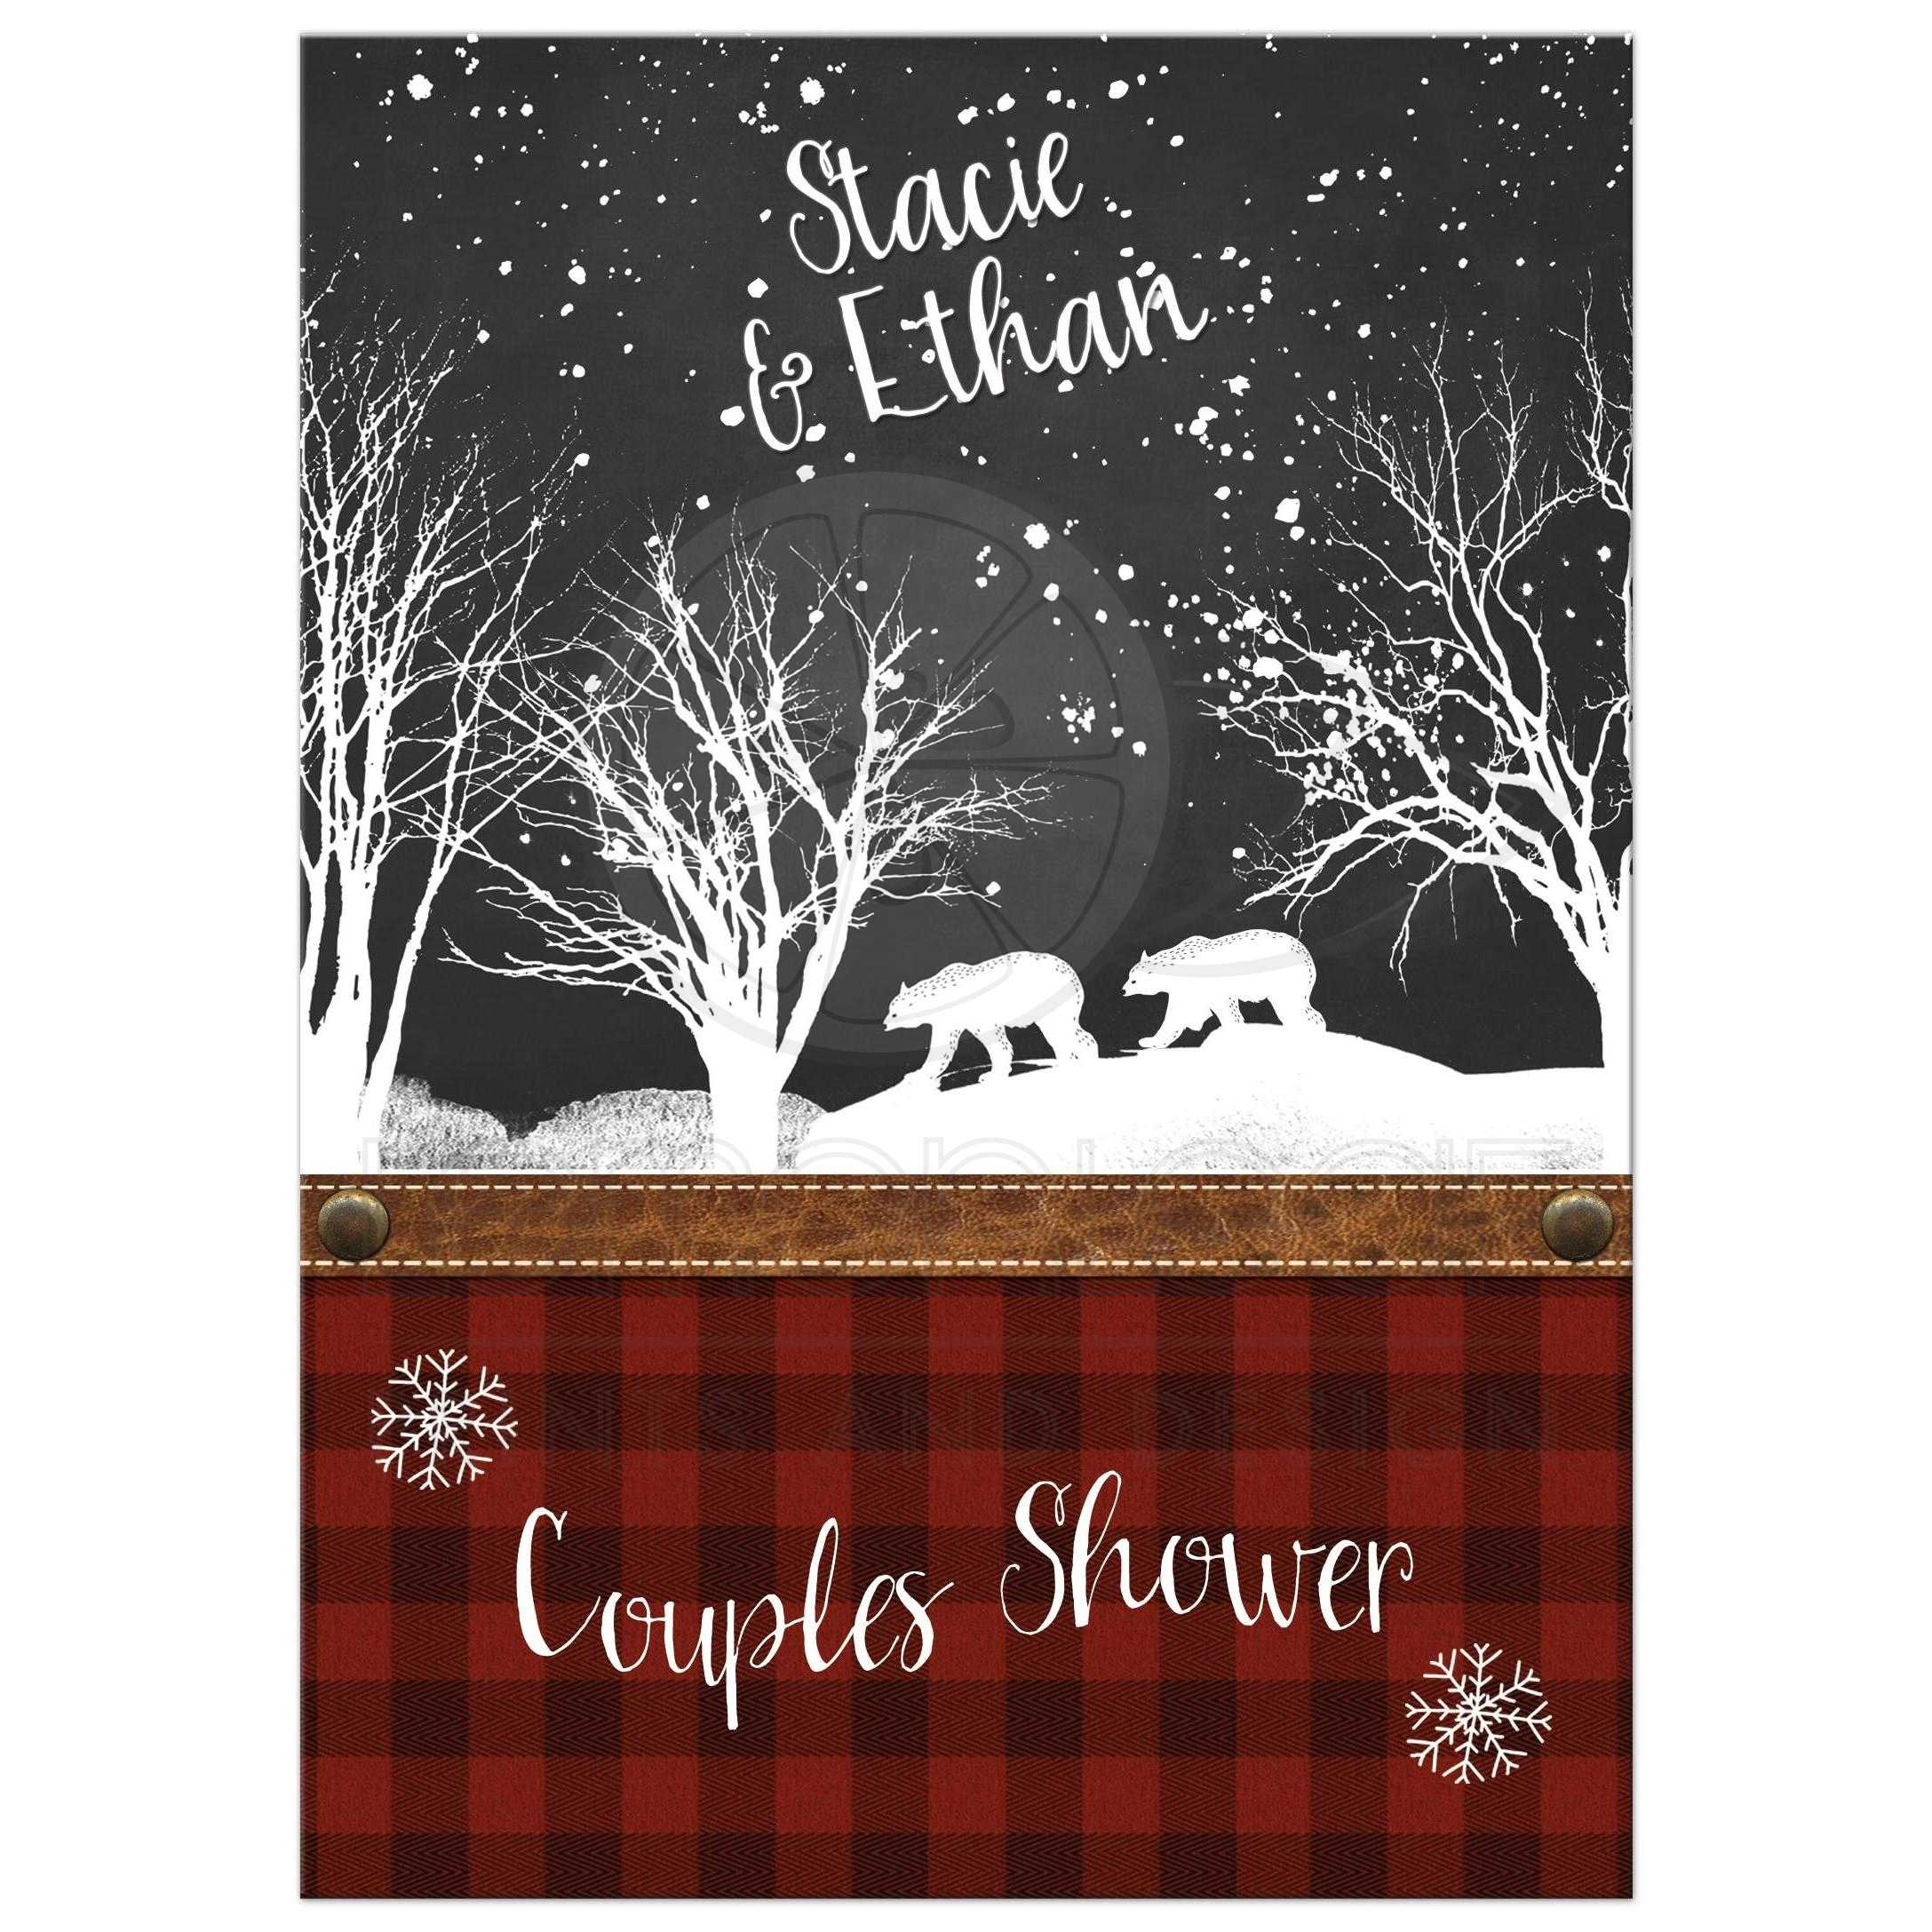 Couples Shower Invitation | Rustic Plaid, Winter Woods, Bears | Snow